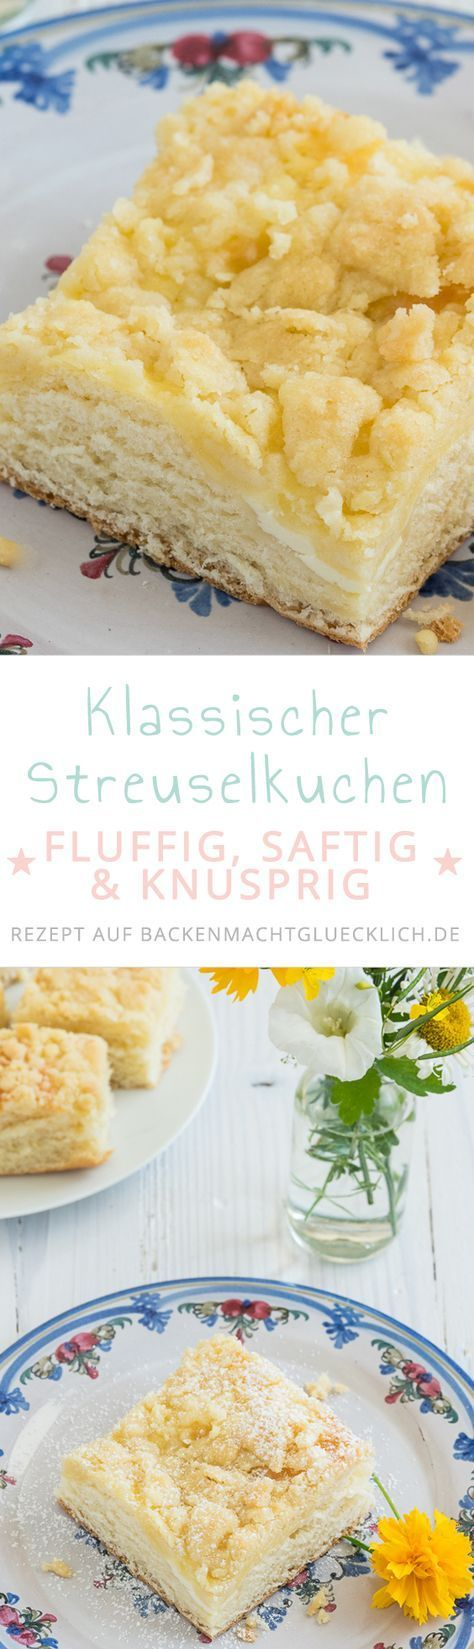 best 25 sandkuchen rezept ideas on pinterest sandkuchen backen sandkuchen and sandkuchen. Black Bedroom Furniture Sets. Home Design Ideas